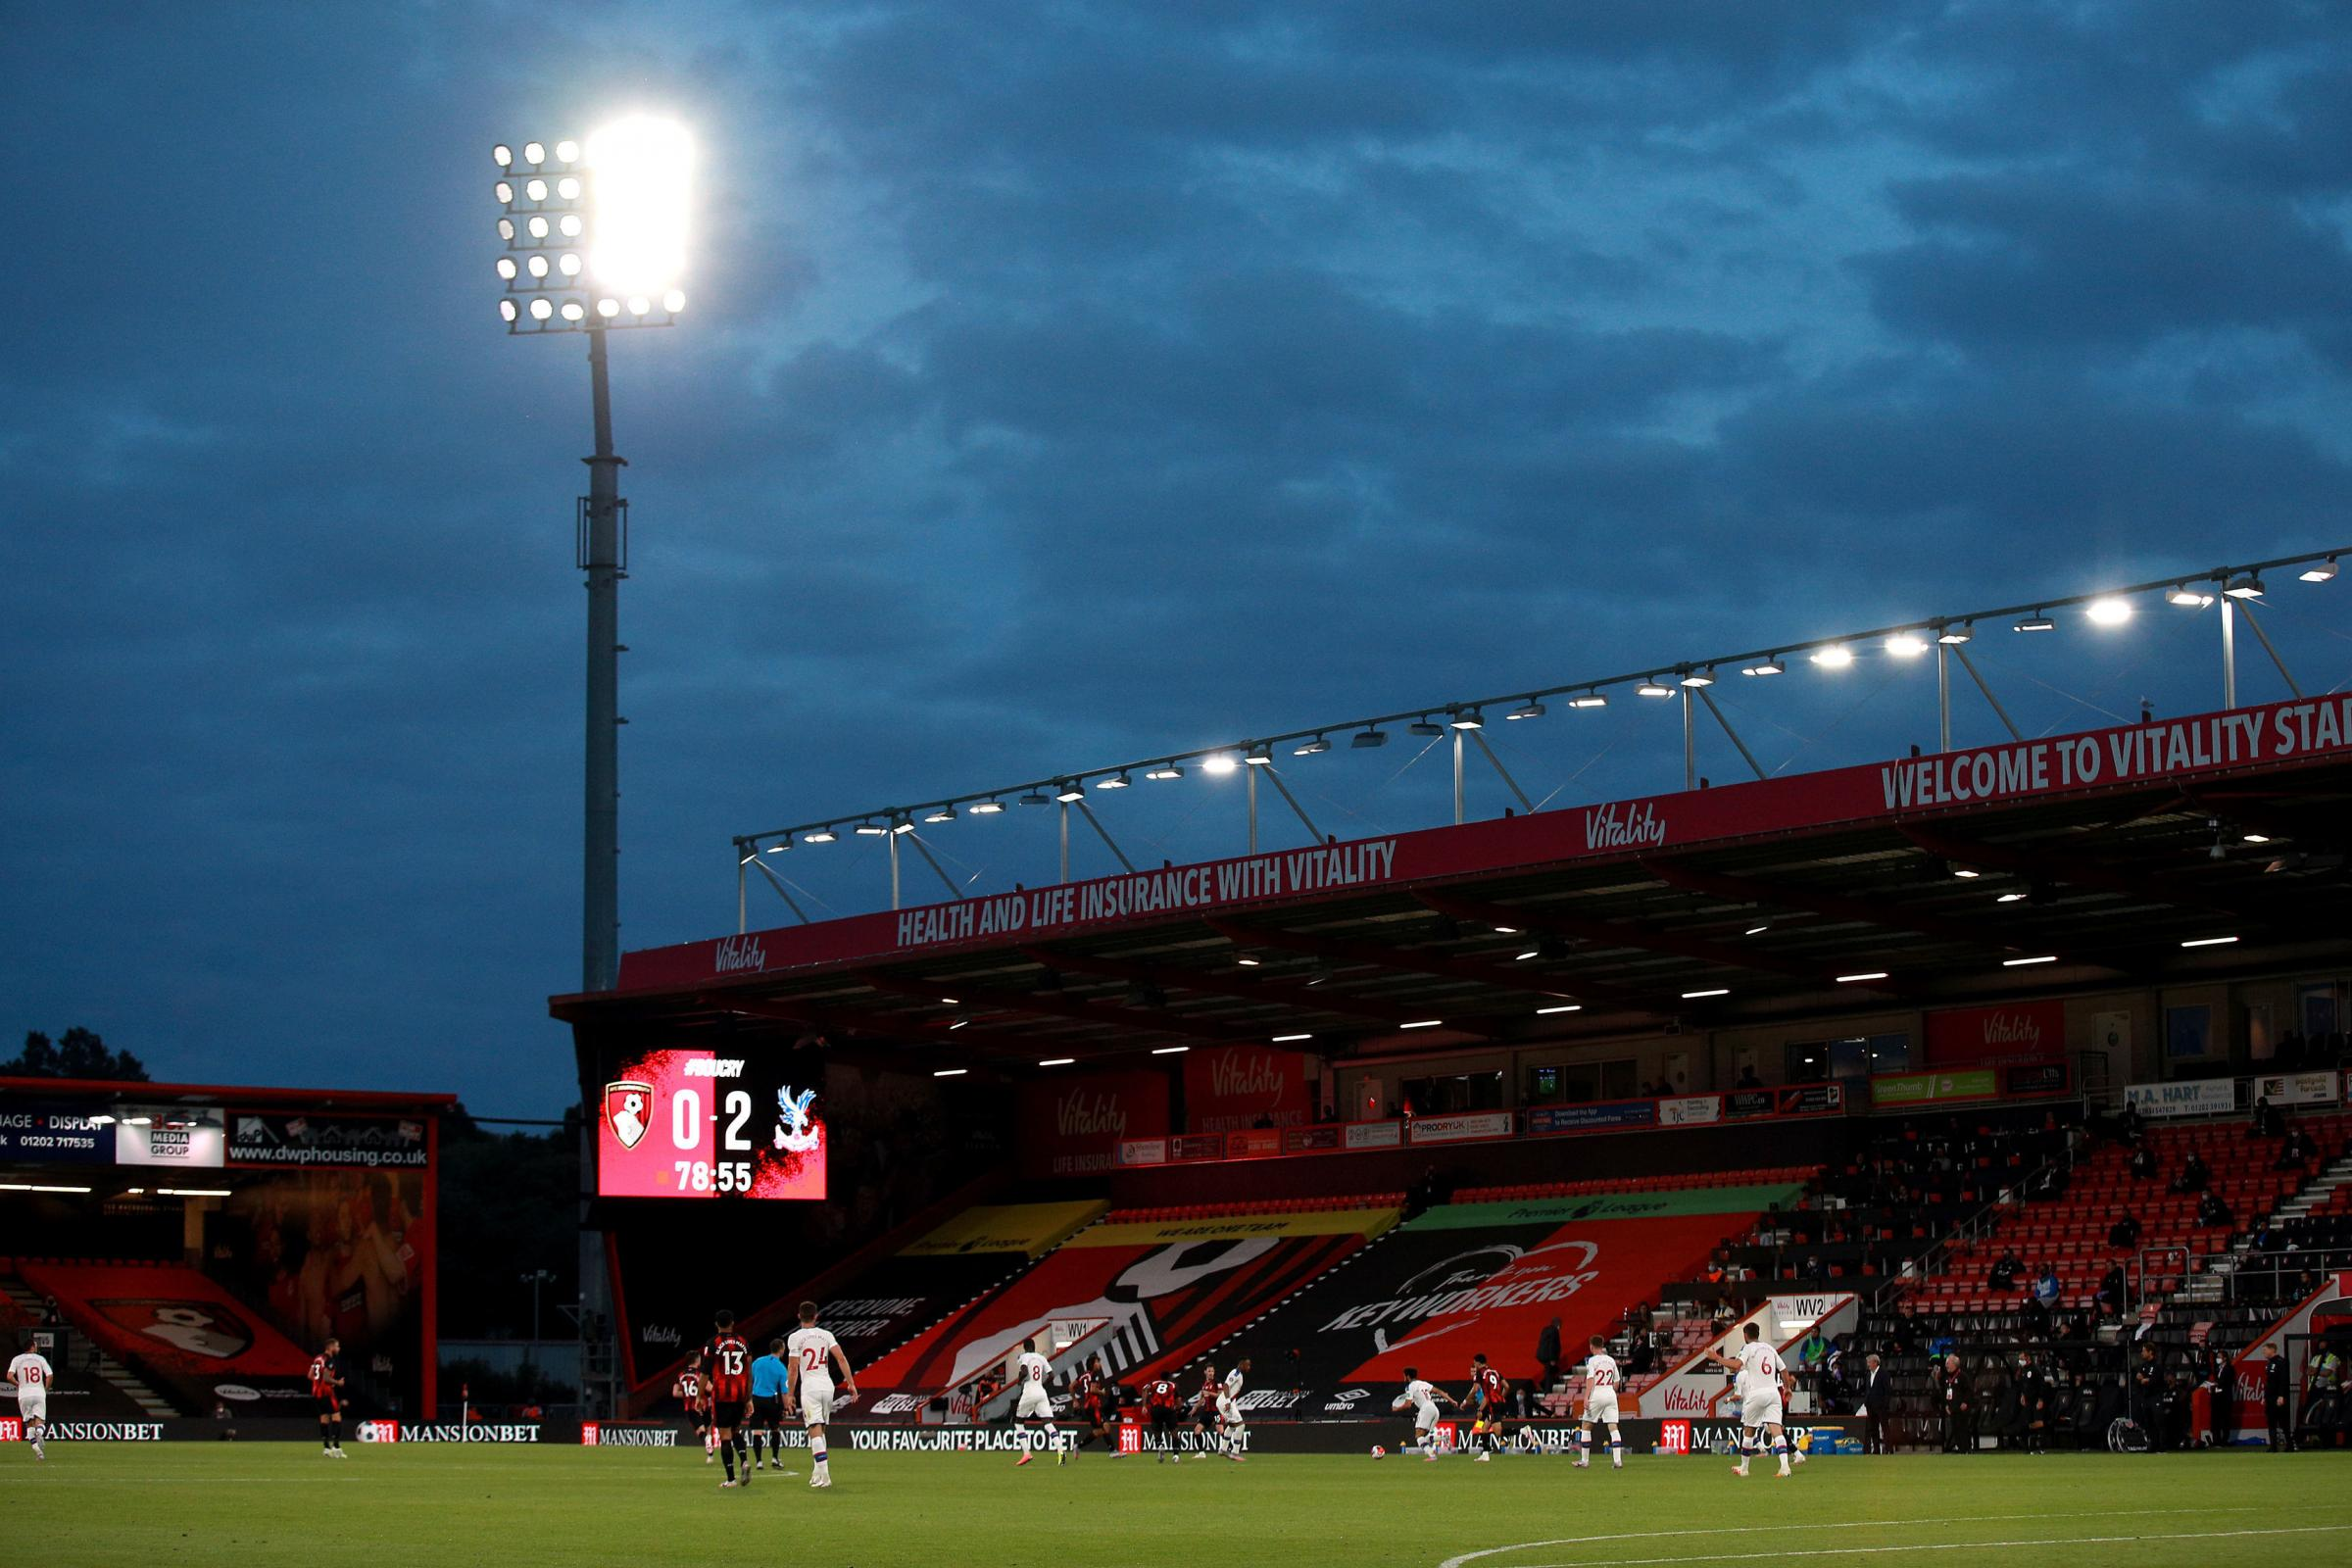 English football's governing bodies call for clarity over return of supporters